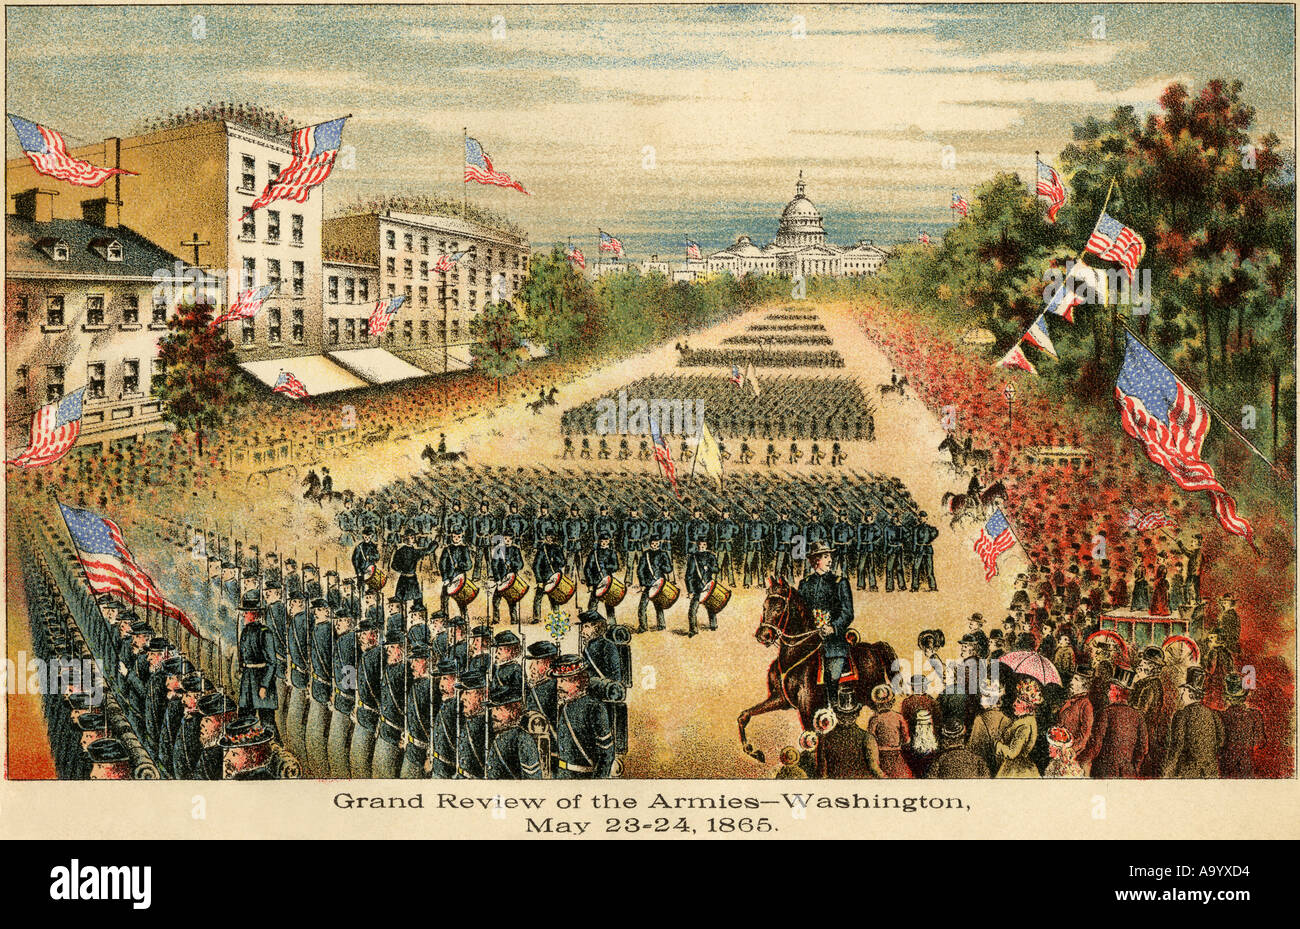 Grand Review Of The Armies At The End Of The Civil War On